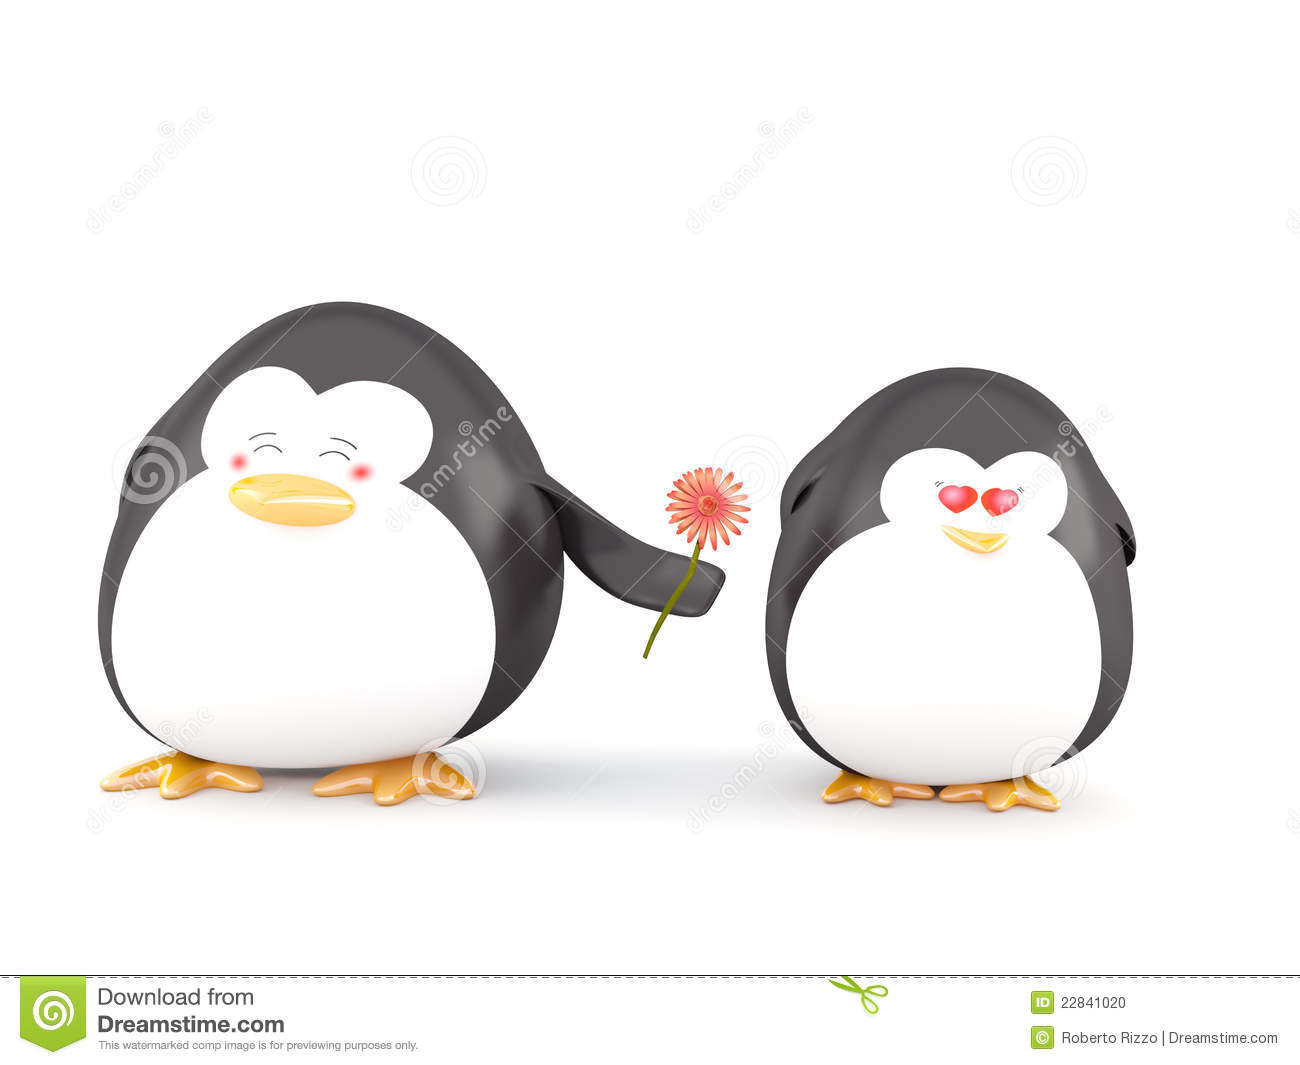 Penguins in Love, Isolated on White - 3D render.